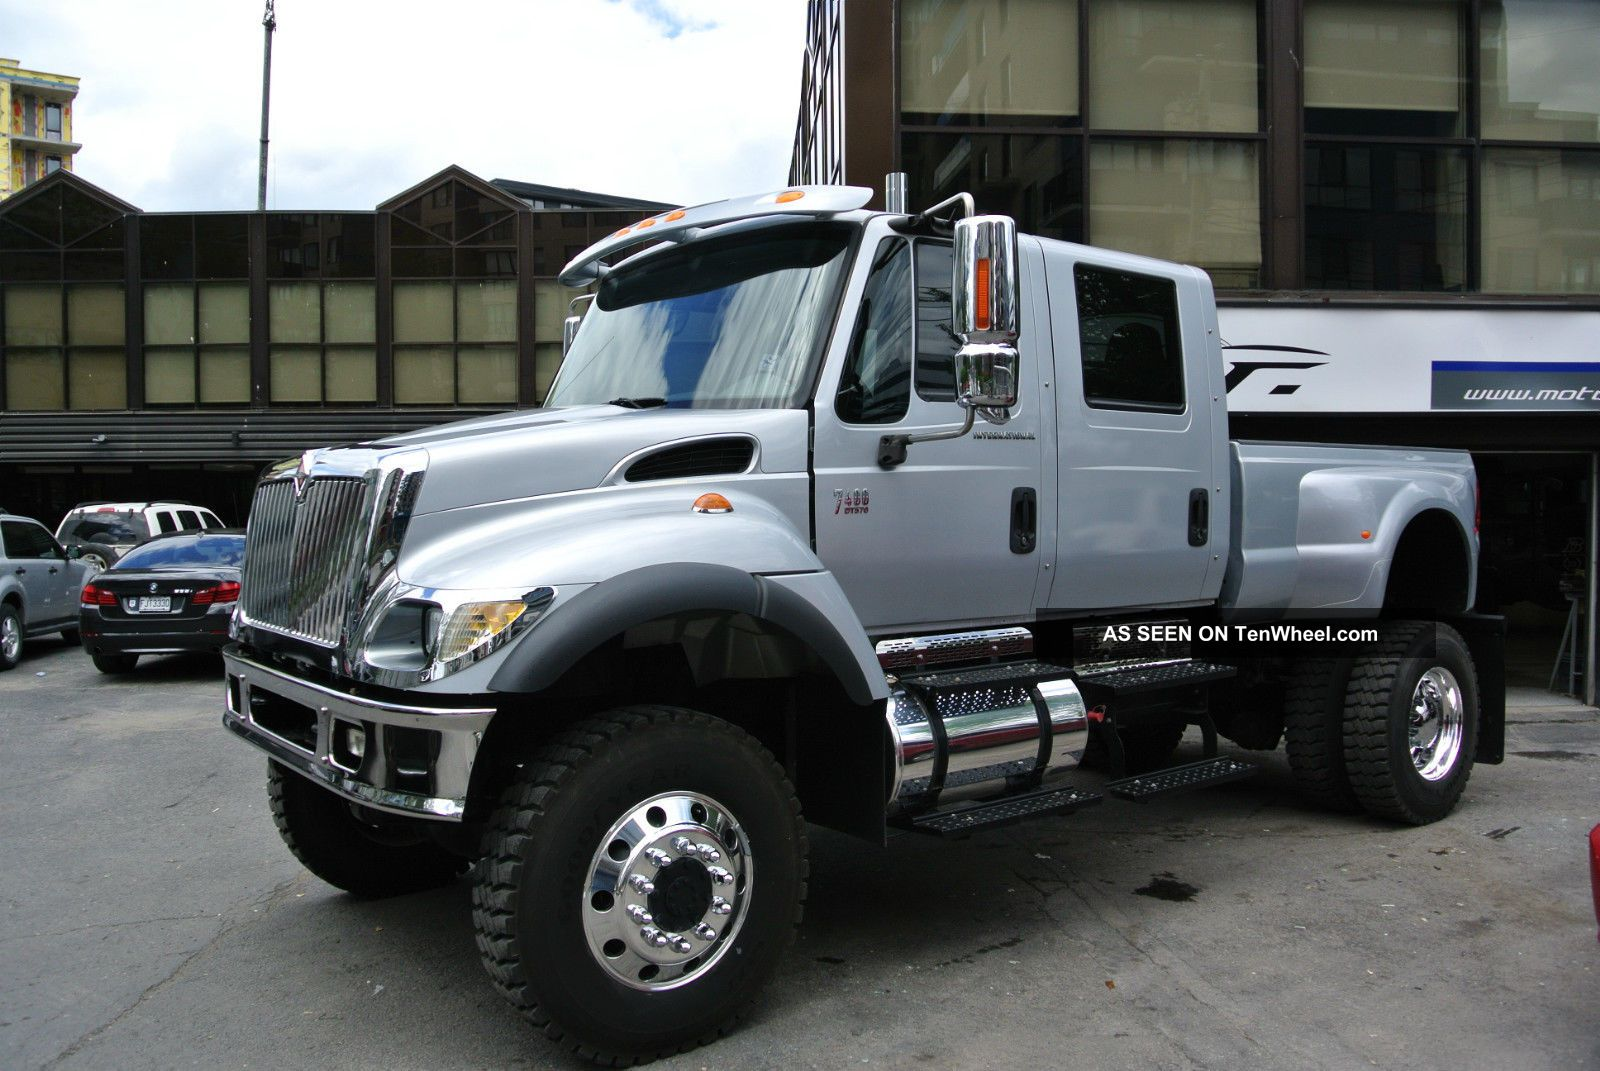 2005 International Cxt 7400 Other photo